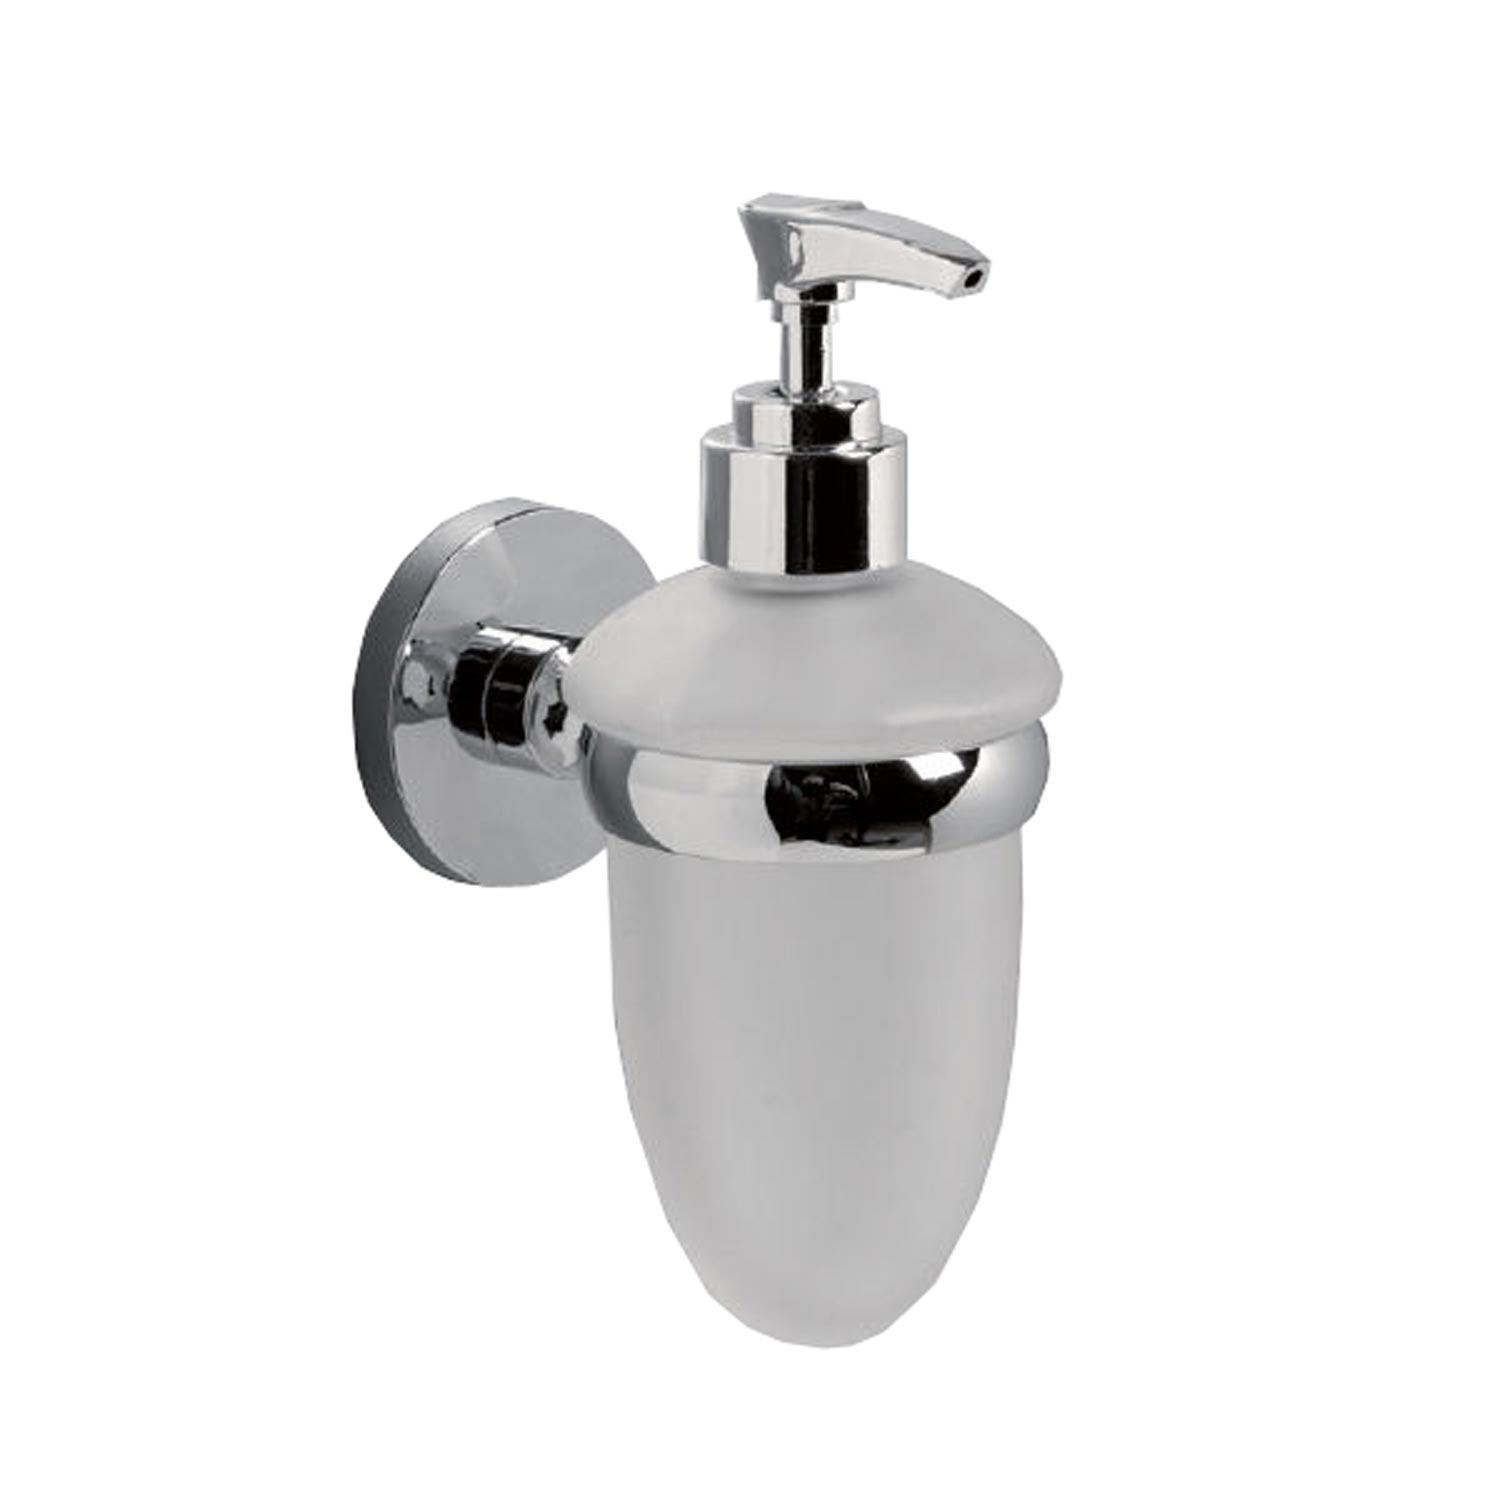 Image of Miller Lily Soap Dispenser, Chrome